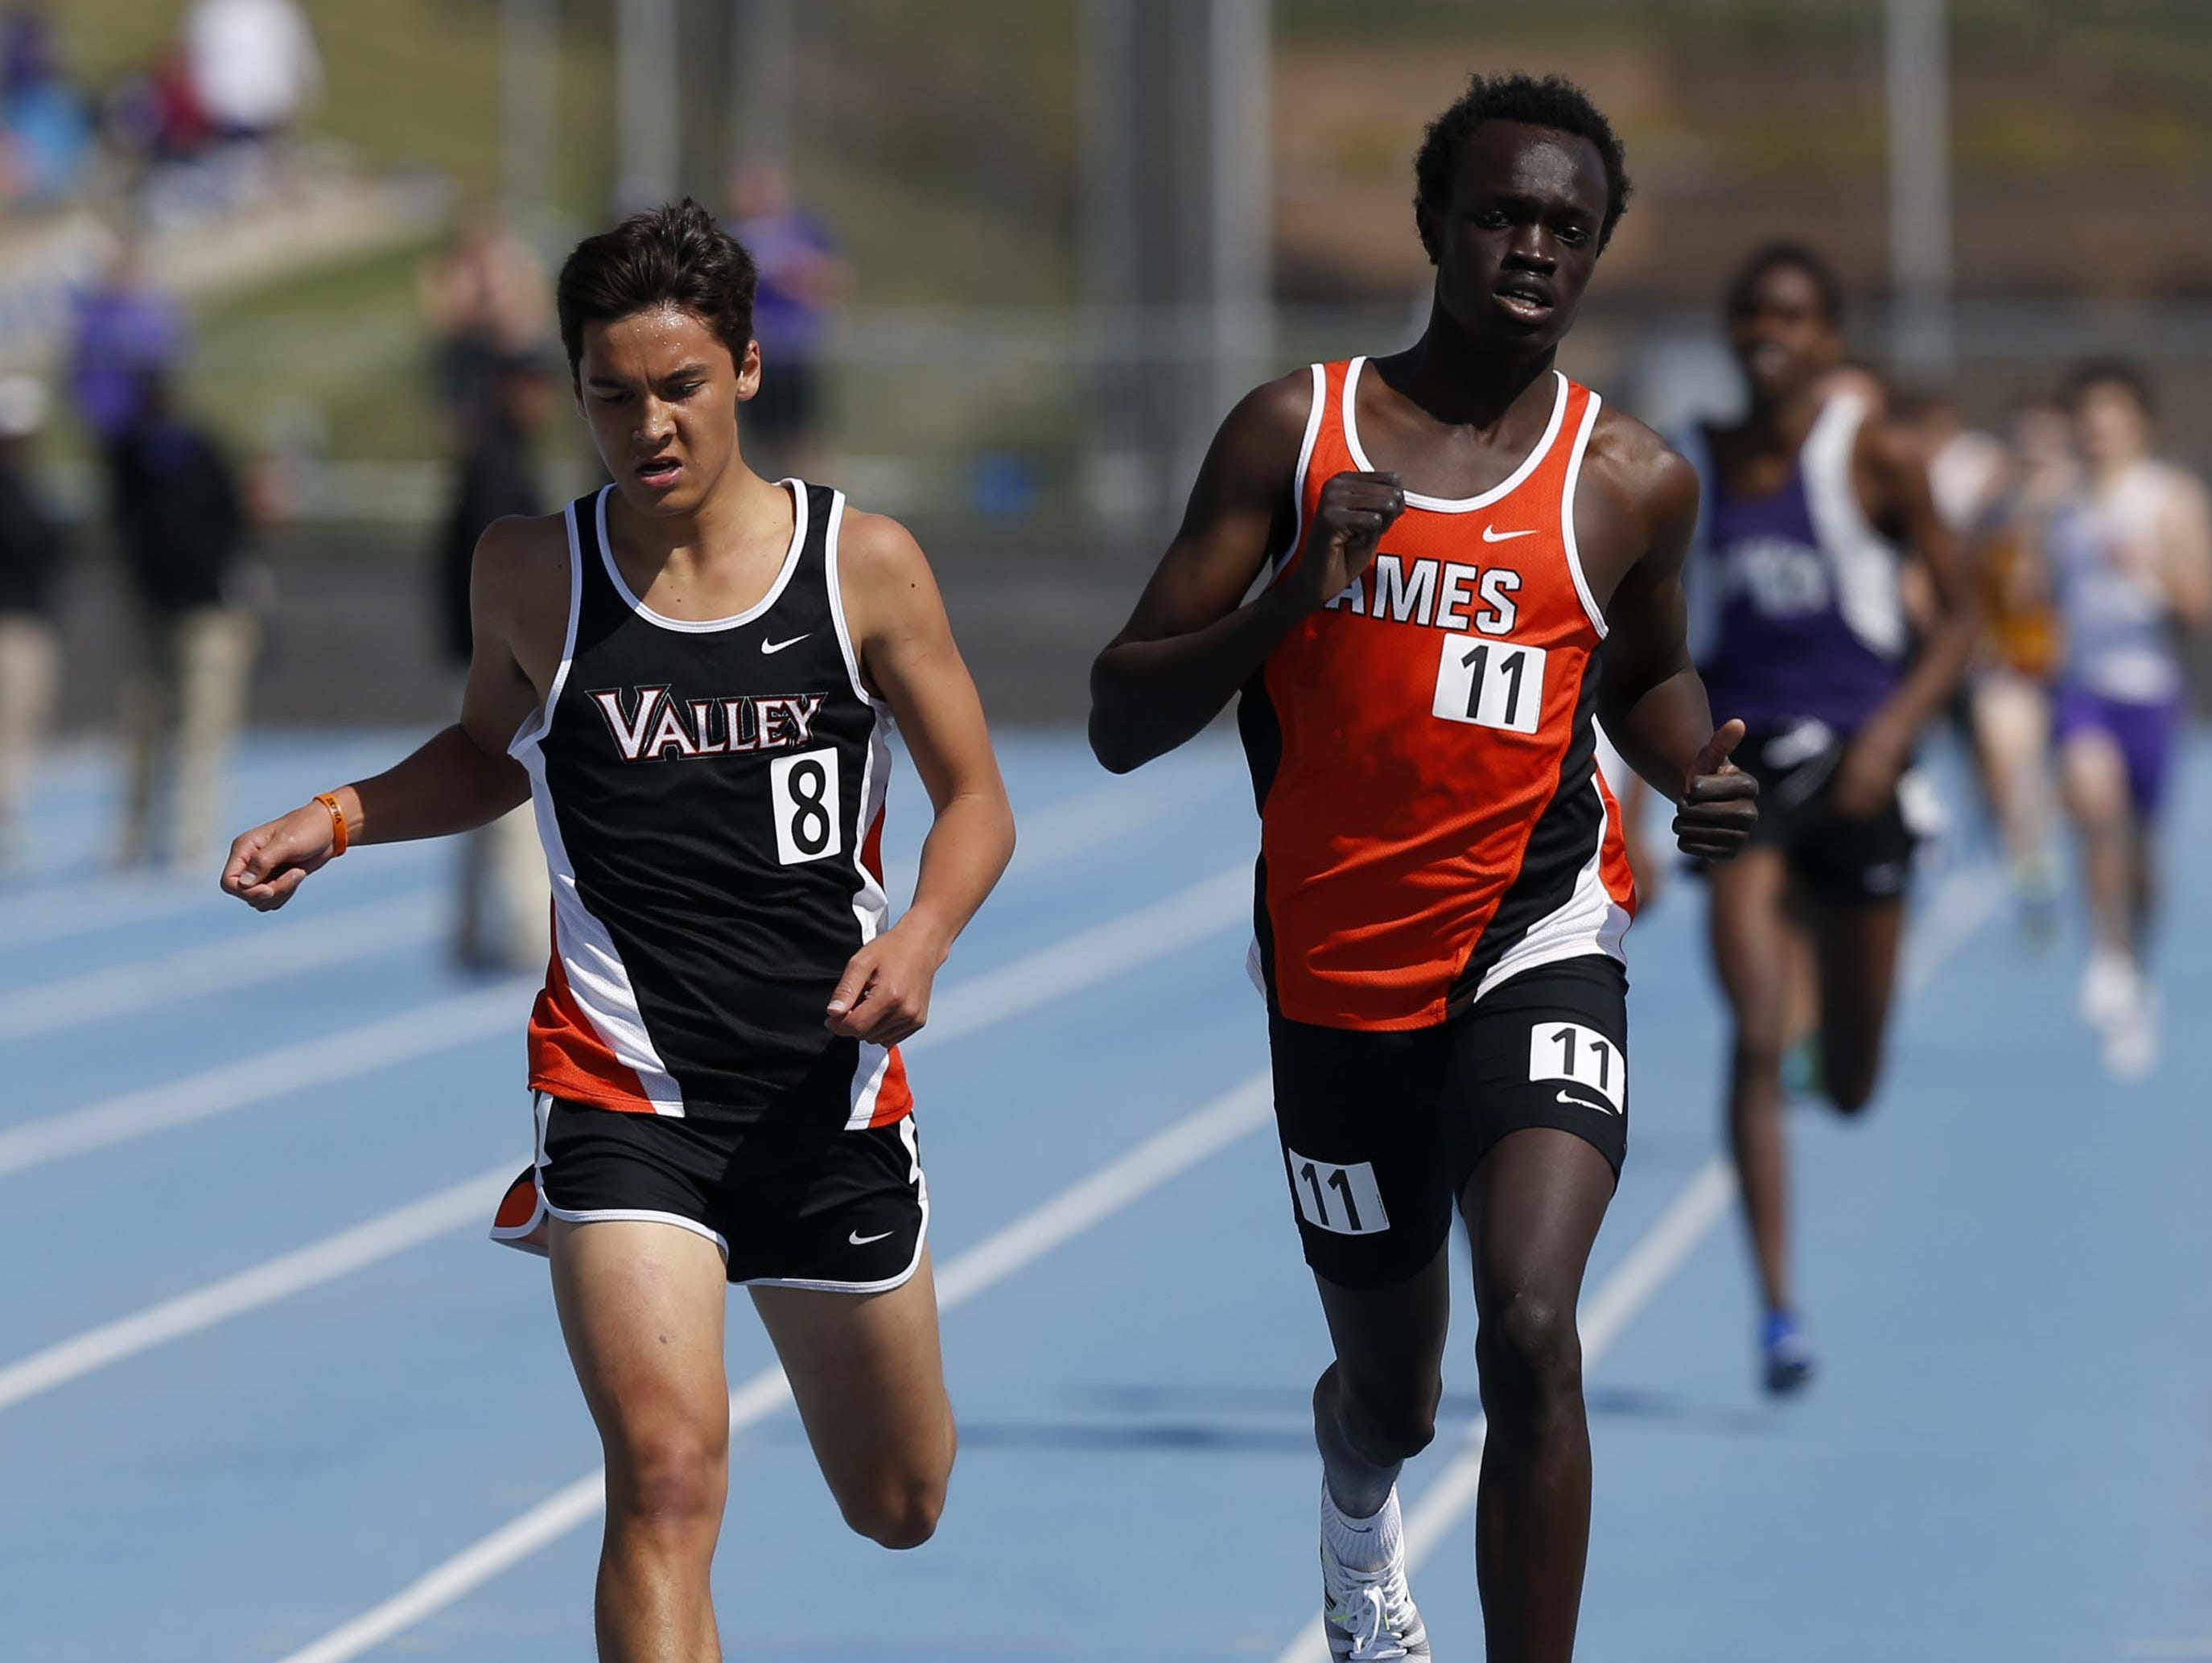 West Des Moines Valley's Daniel Soto (left) gets edged out at the finish line by Ames' Atem Akok in the Duncan Invitational 1,600 Saturday.